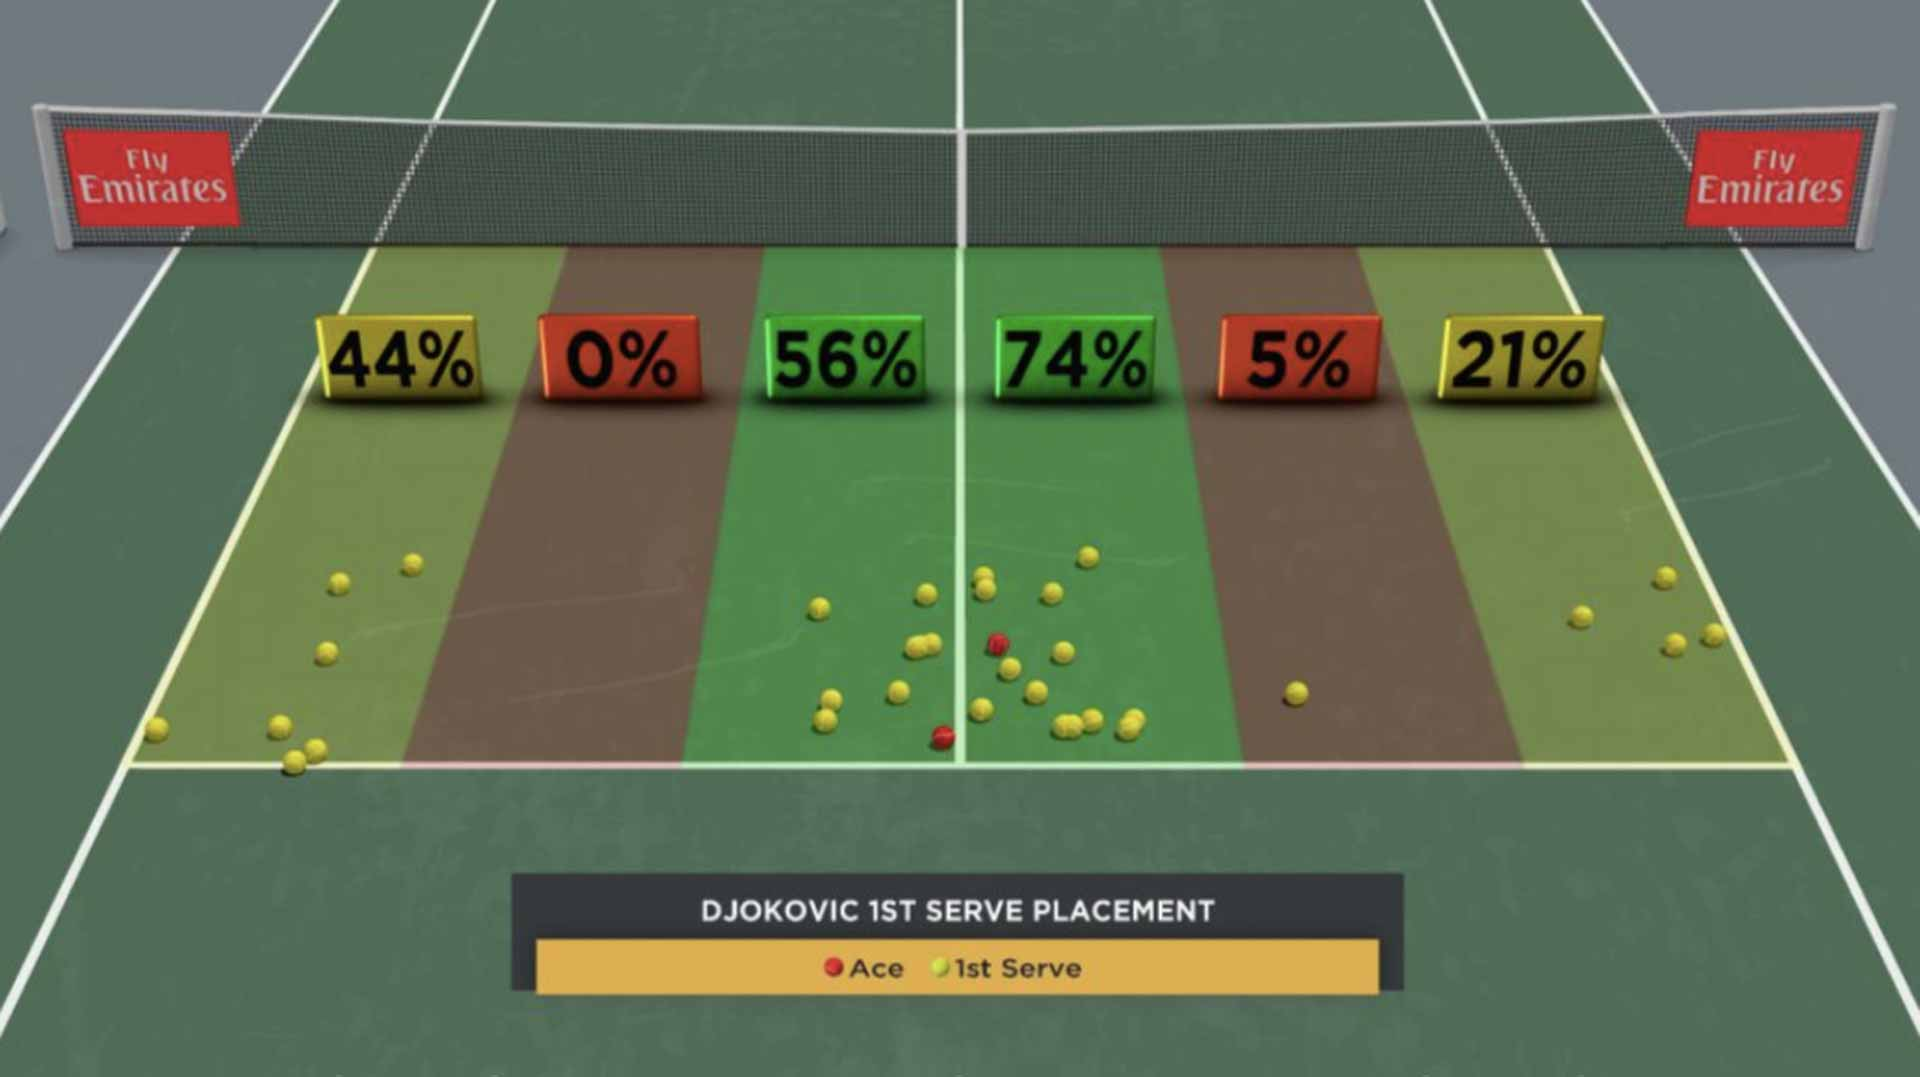 Djokovic First-Serve Placement